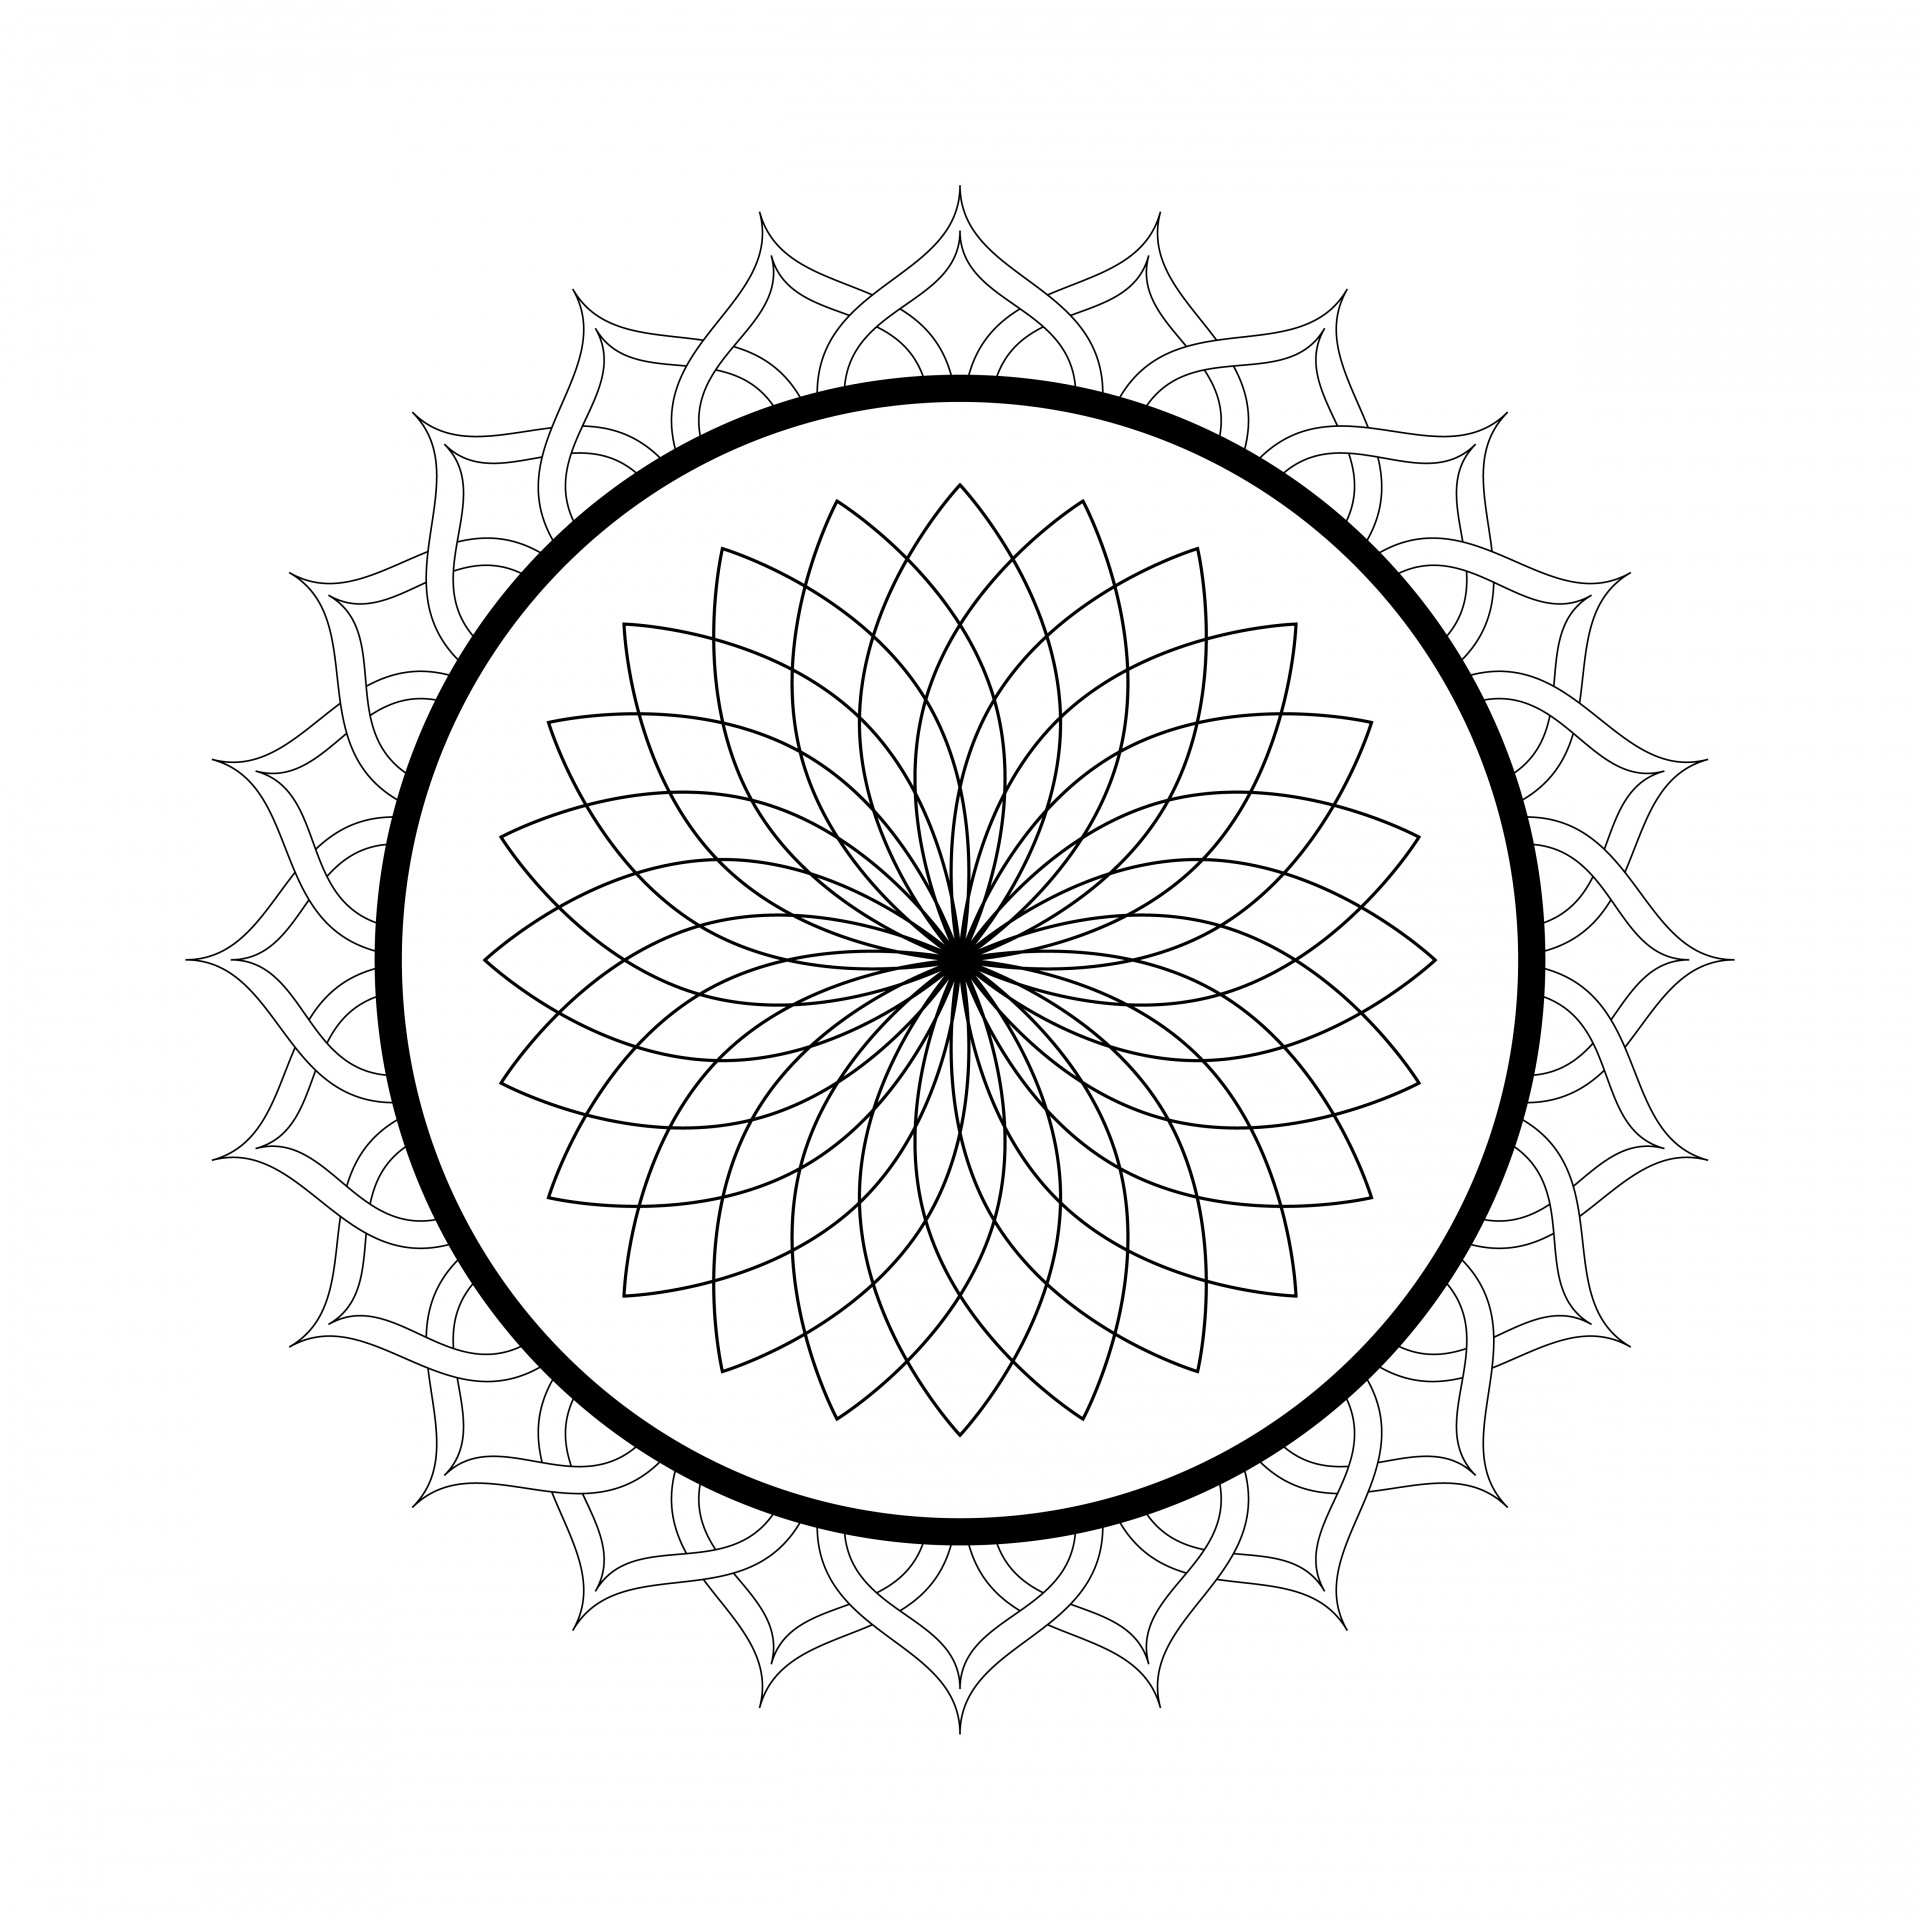 mandala coloring pages for adults free printable mandala coloring pages for kids cool2bkids free coloring pages mandala adults for